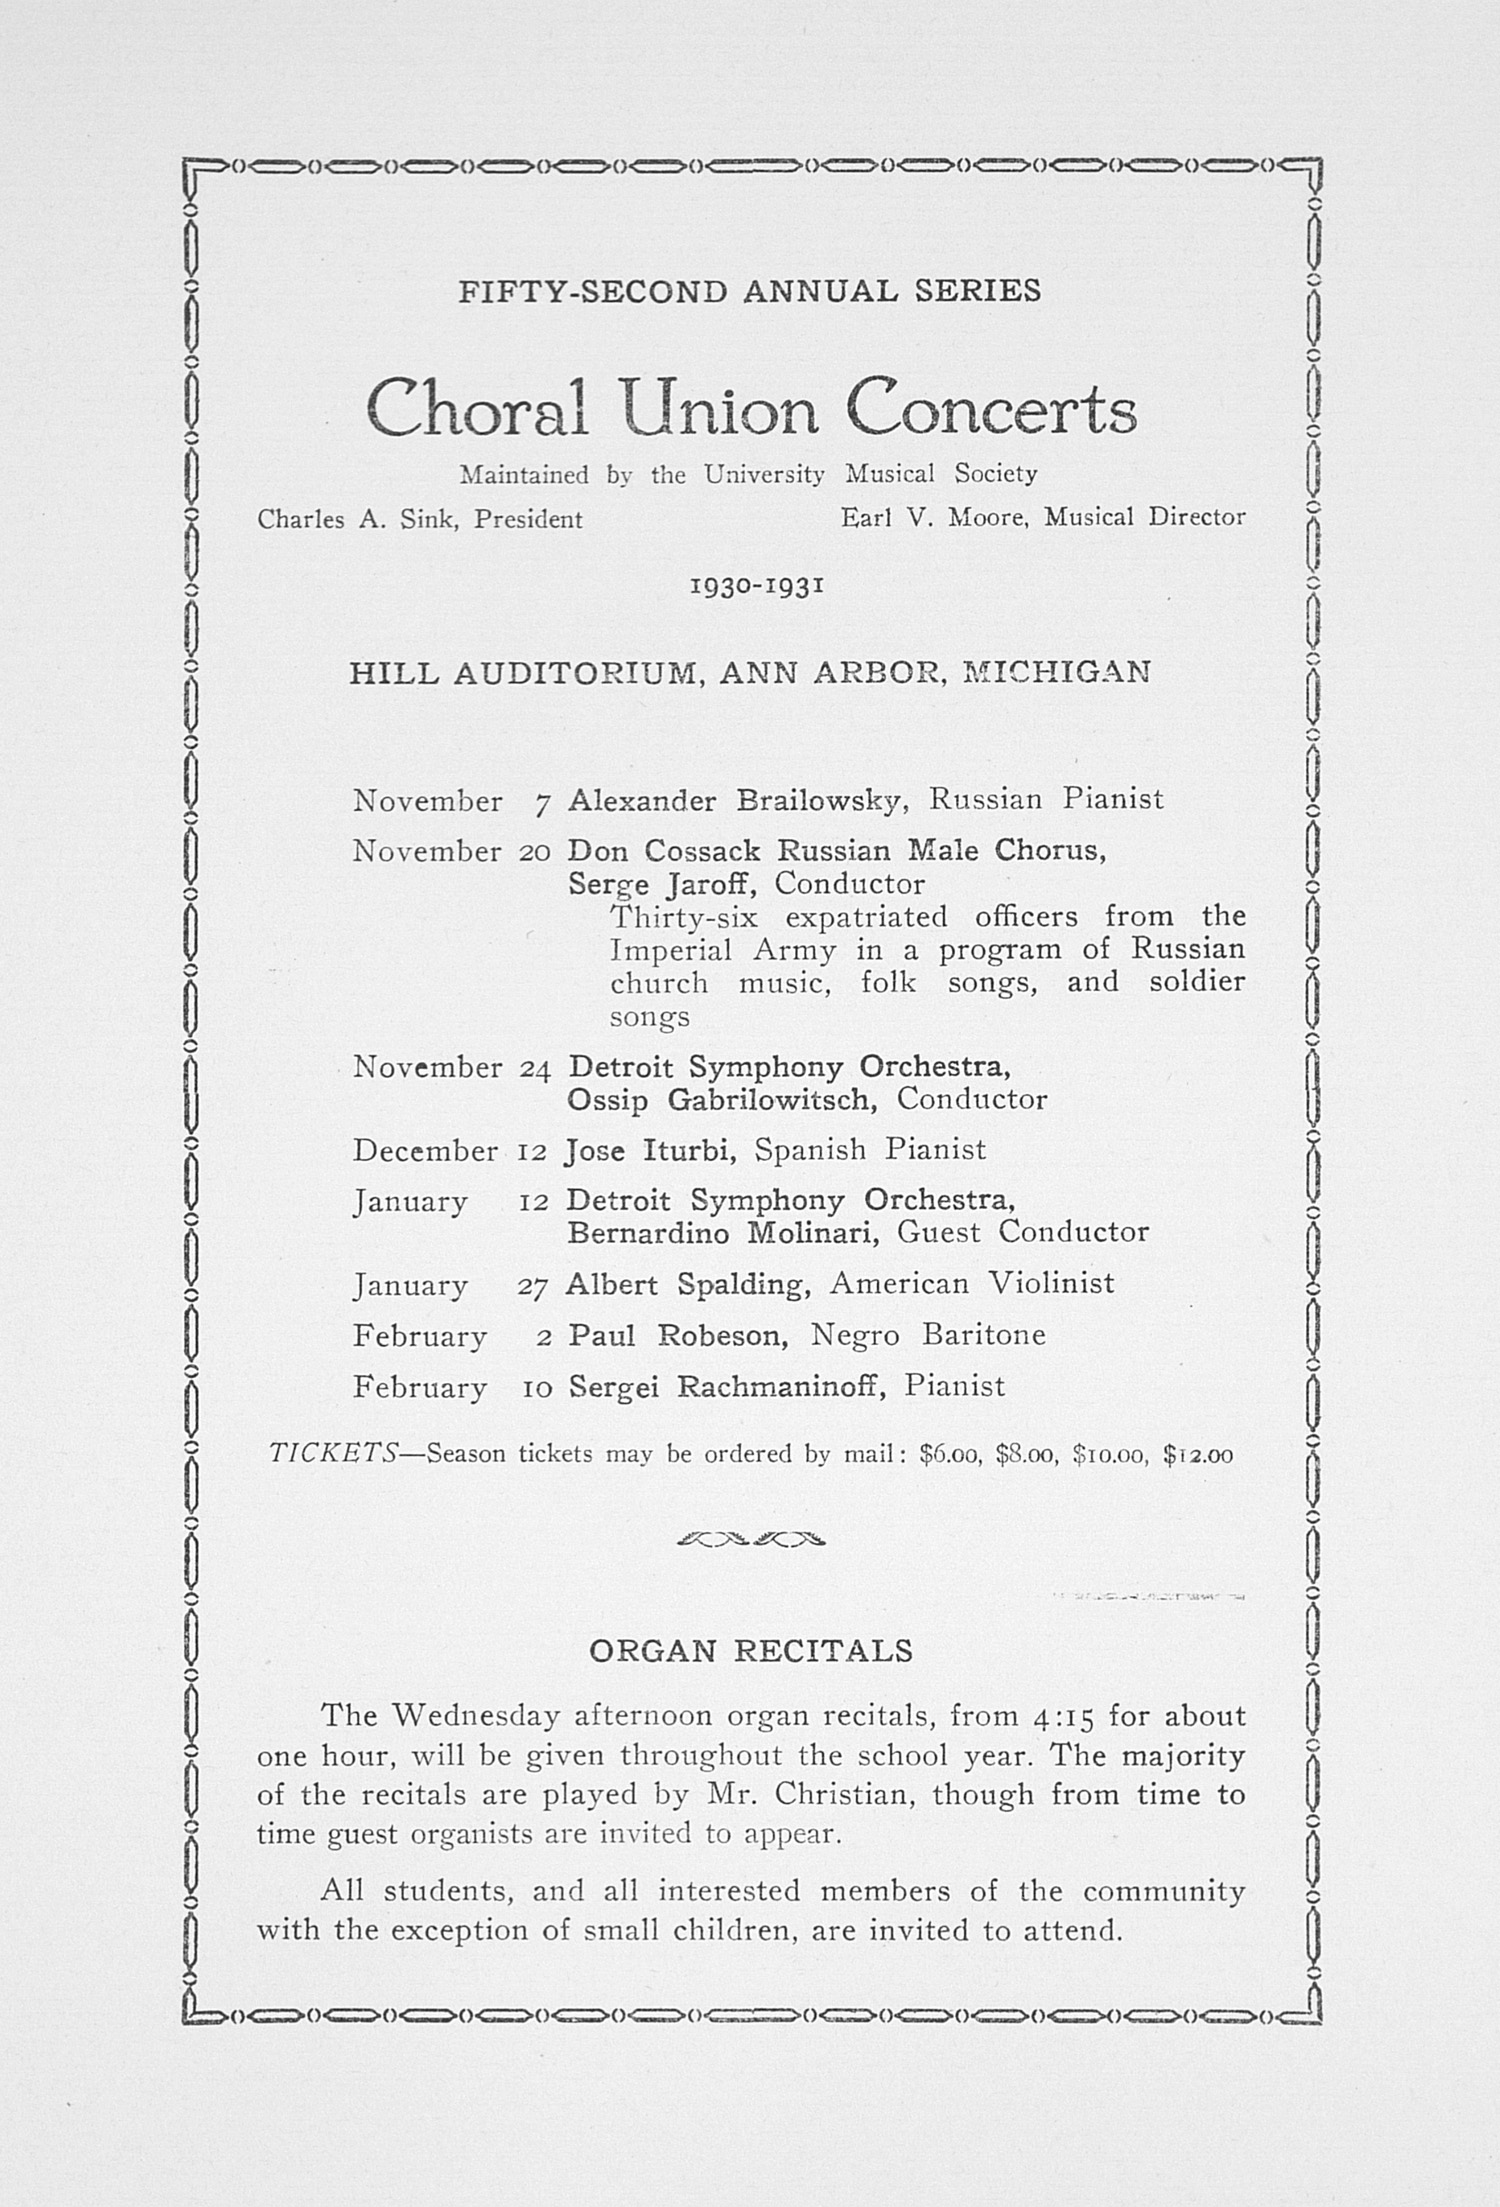 UMS Concert Program, October 31, 1930: Fifty-second Annual Choral Union Concert Series -- Clare Clairbert image